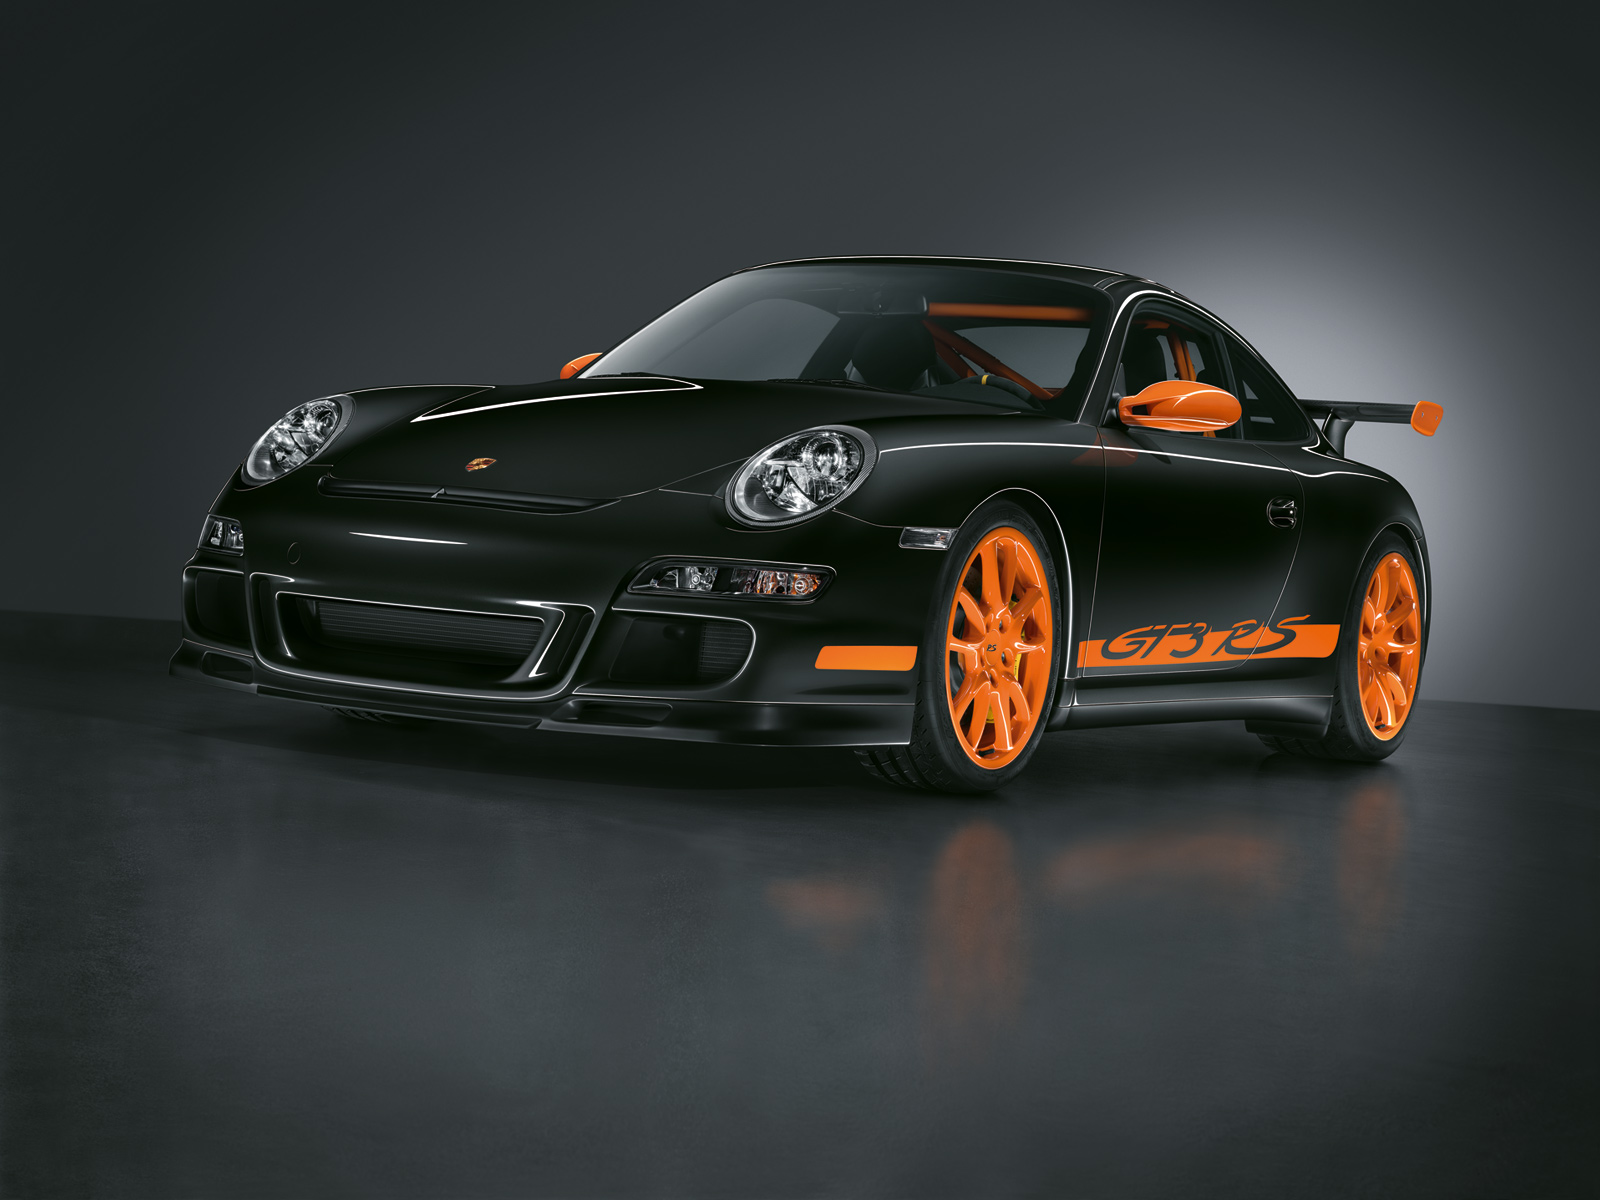 2015 Porsche 911 GT3 RS HD Picture Wallpaper Download